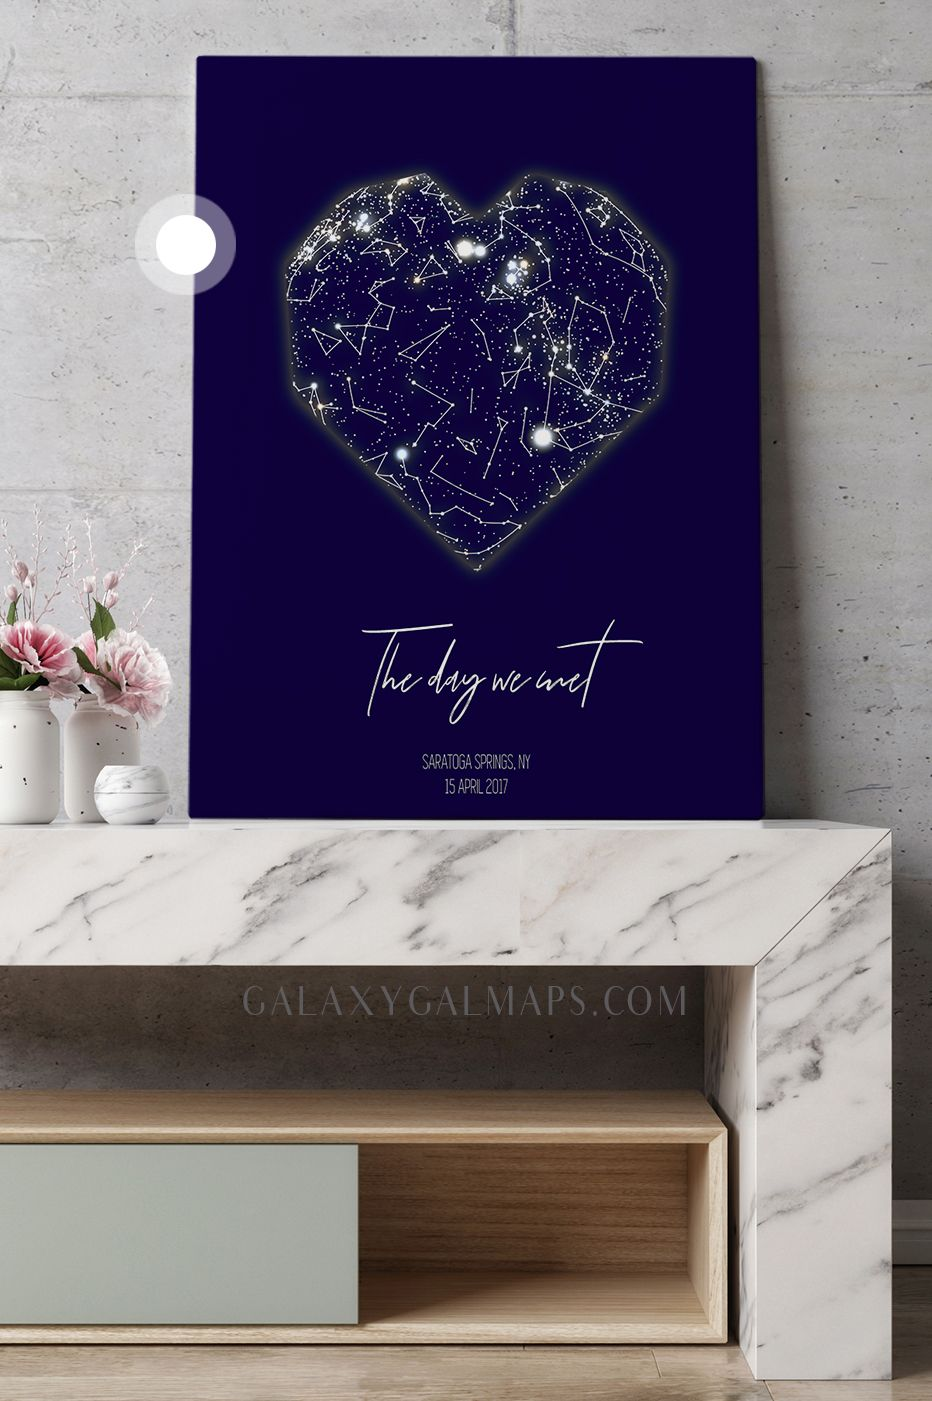 Unique sky map for your date astrology poster wall art bedroom